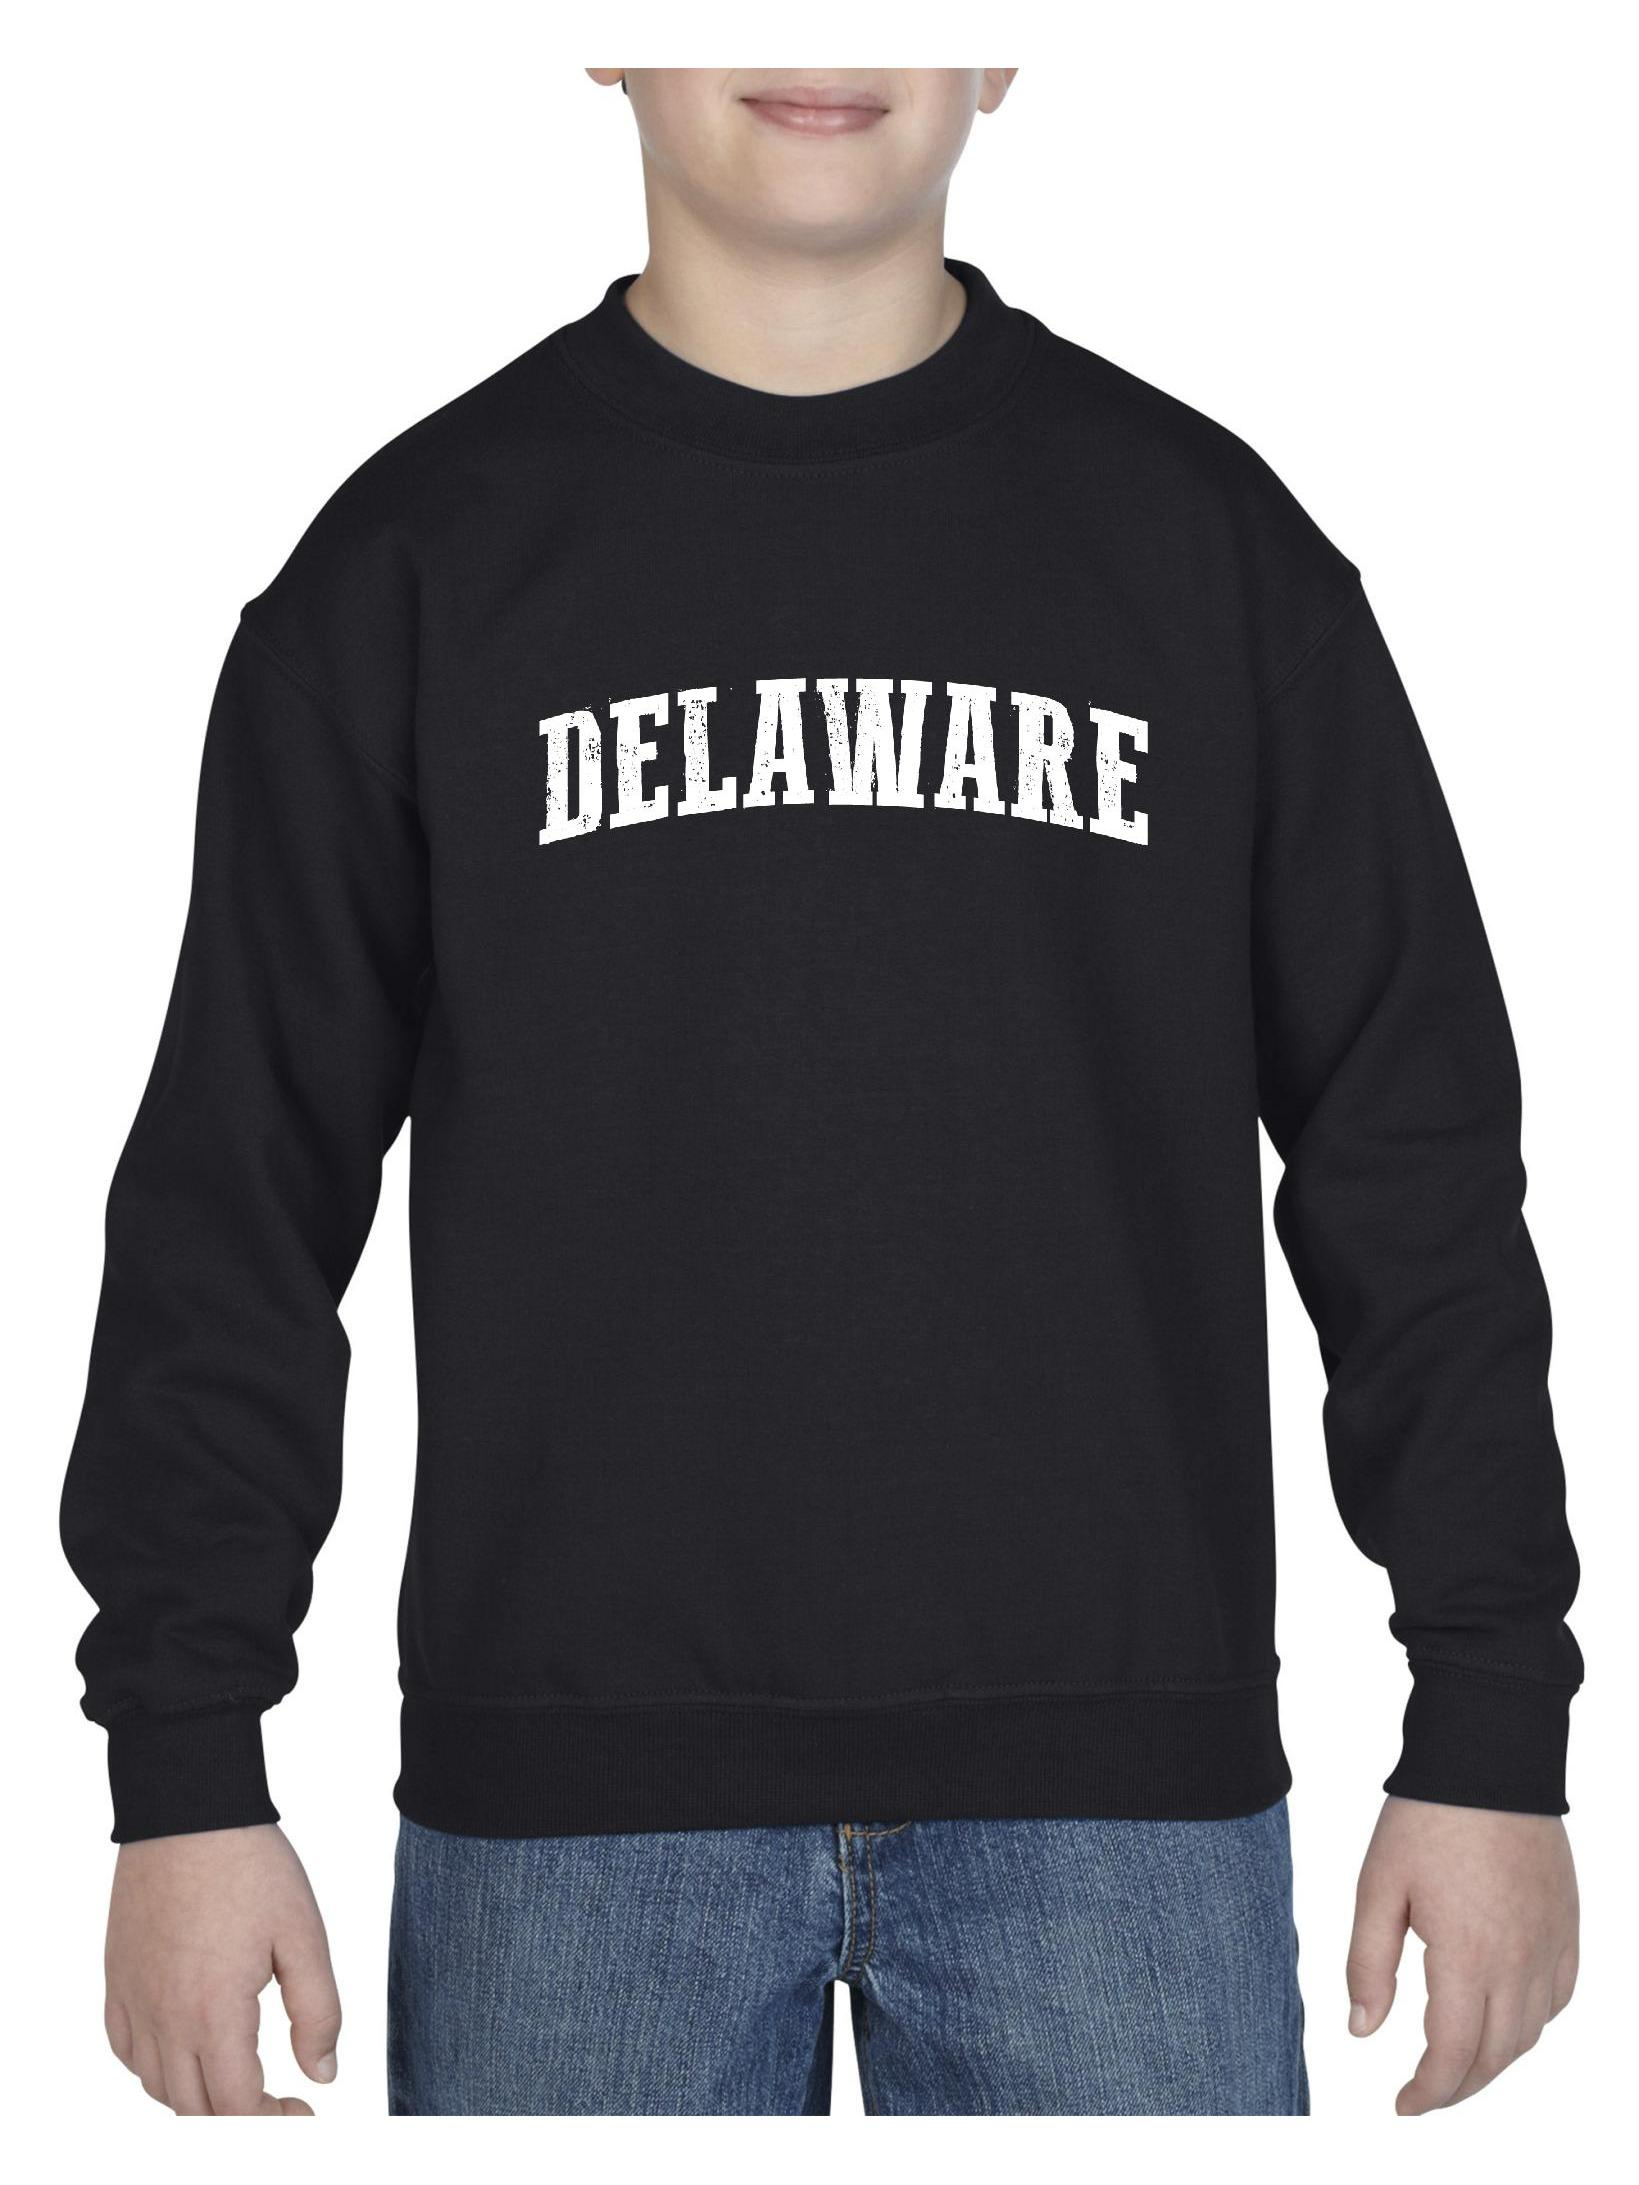 Delaware State Flag Unisex Youth Crewneck Sweatshirt